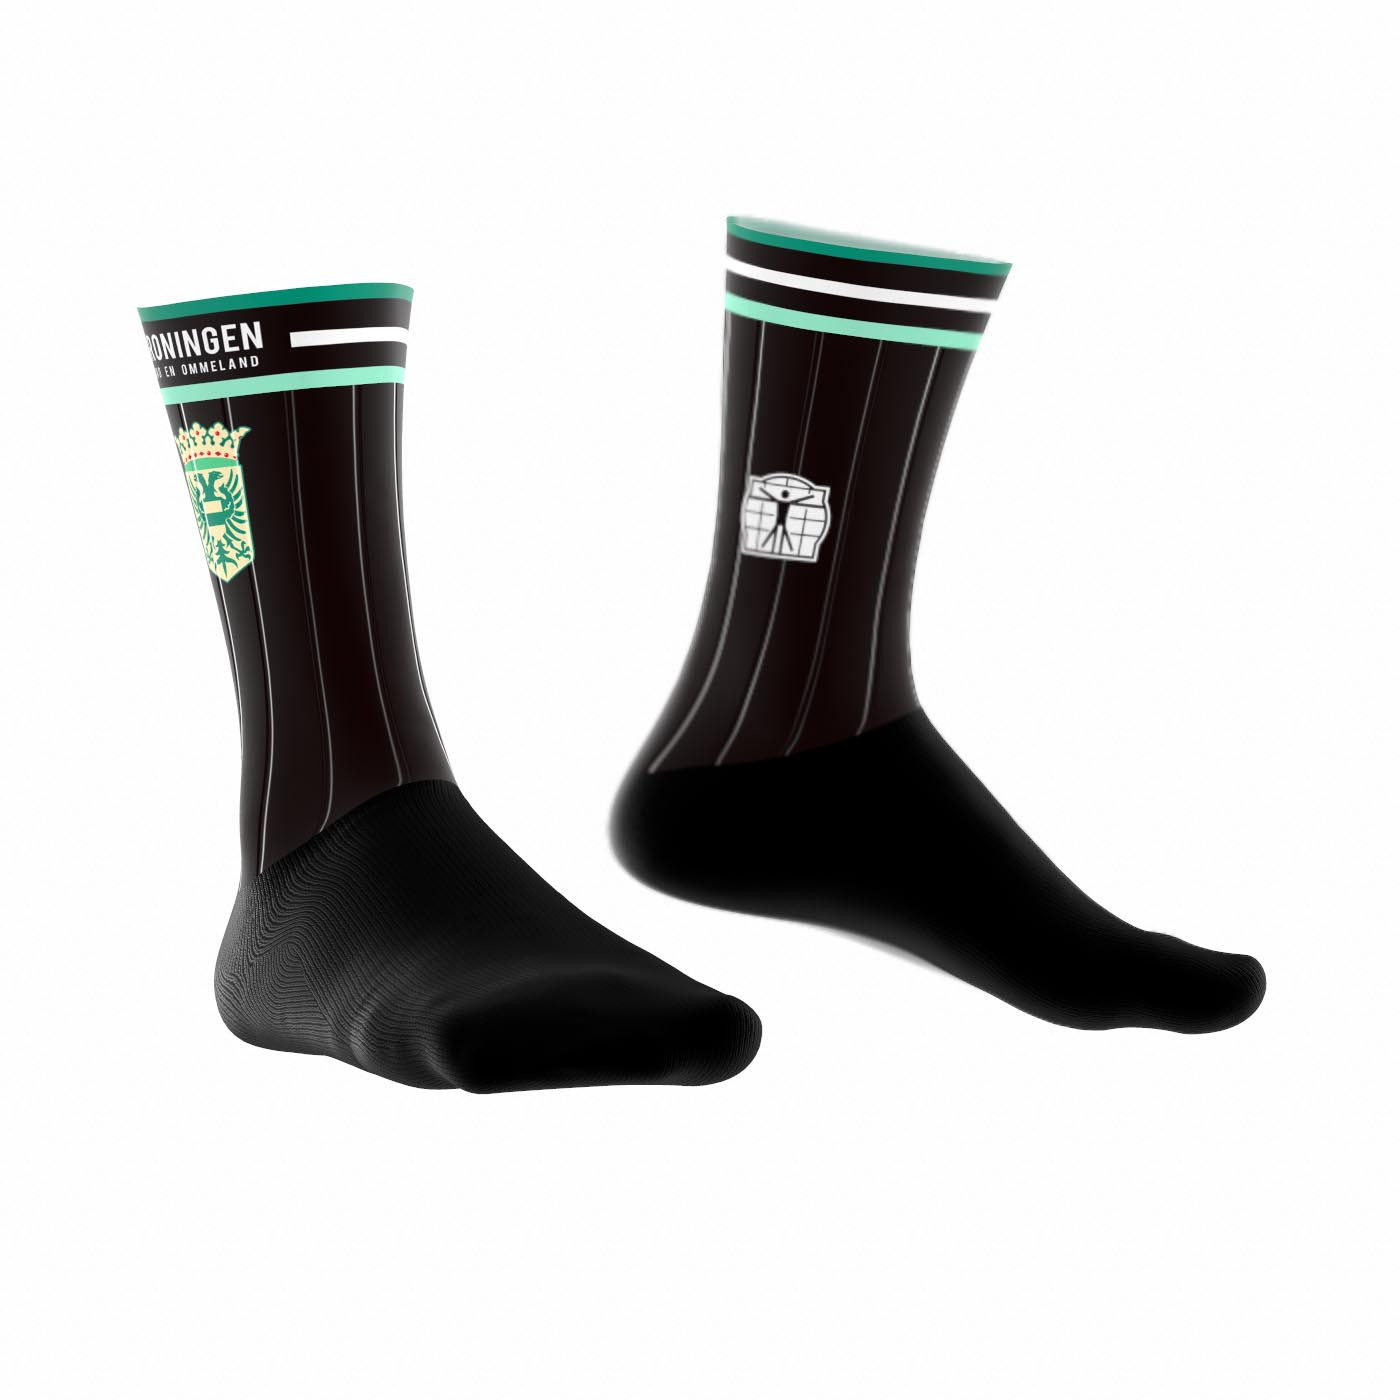 prj20-010123_acc-speedsocks_left